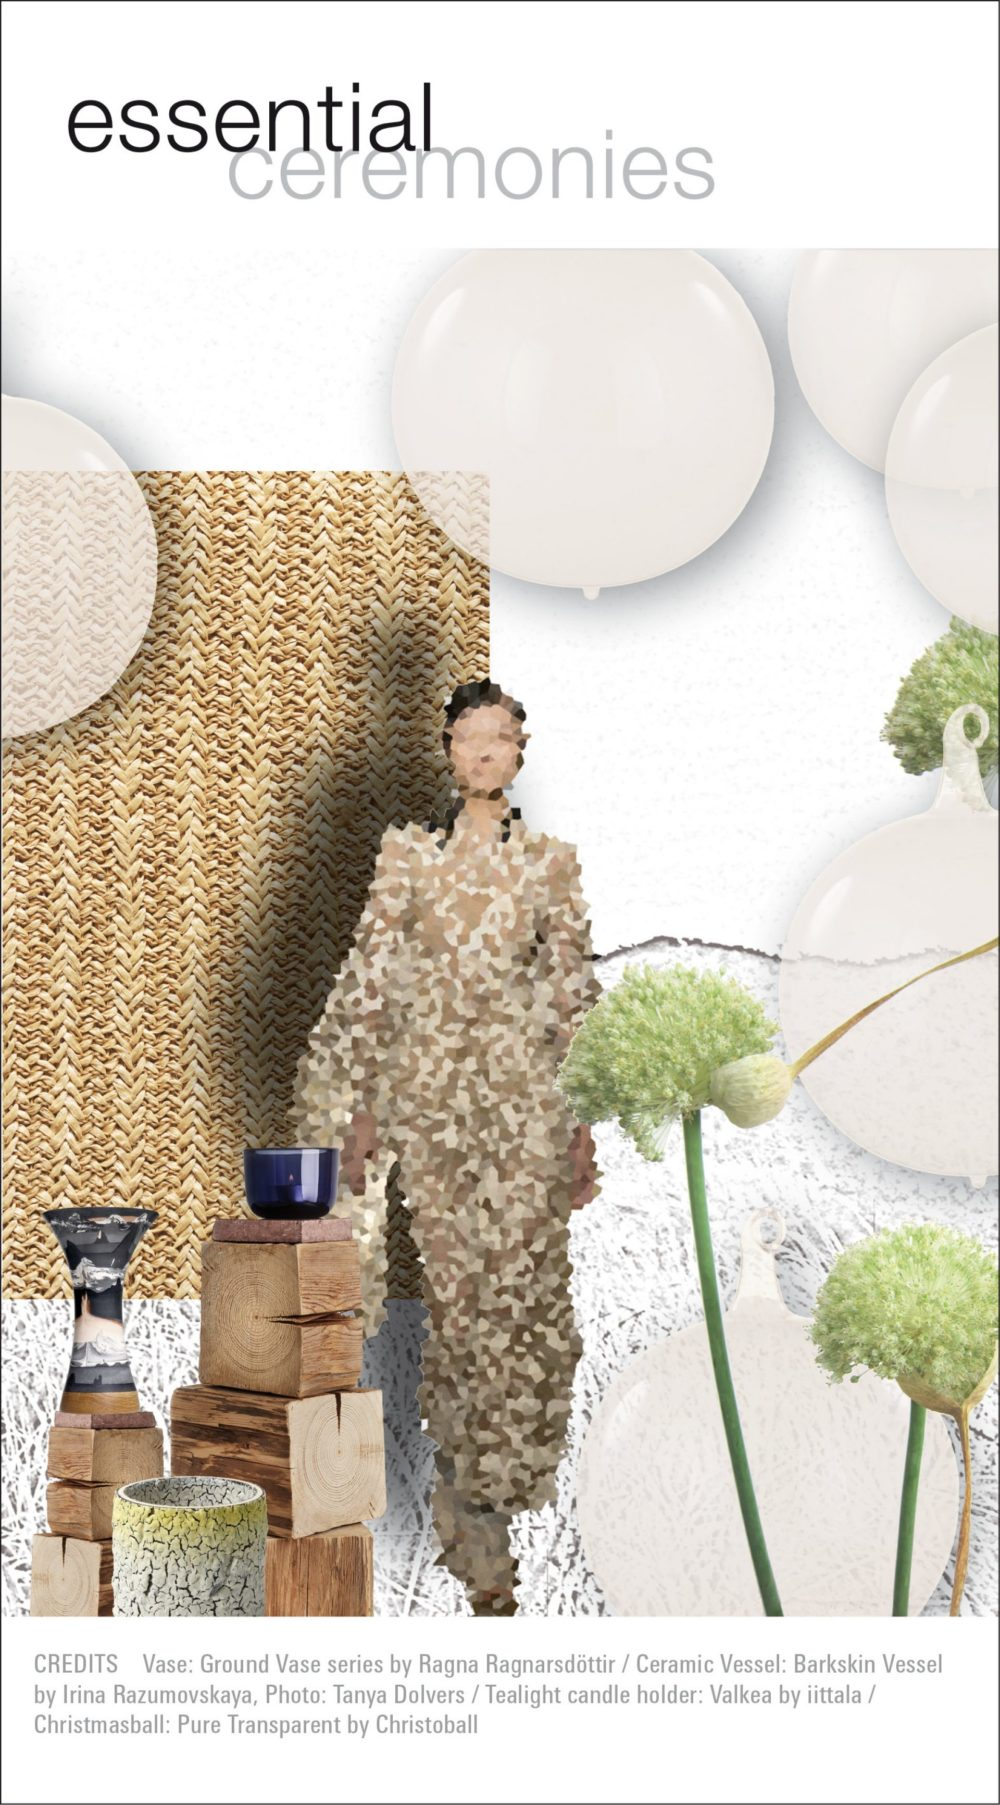 essential ceremonies: naturalness and modernity meet raw, rustic aspects. There is a predominance of earthy, warm tones and a matcha green